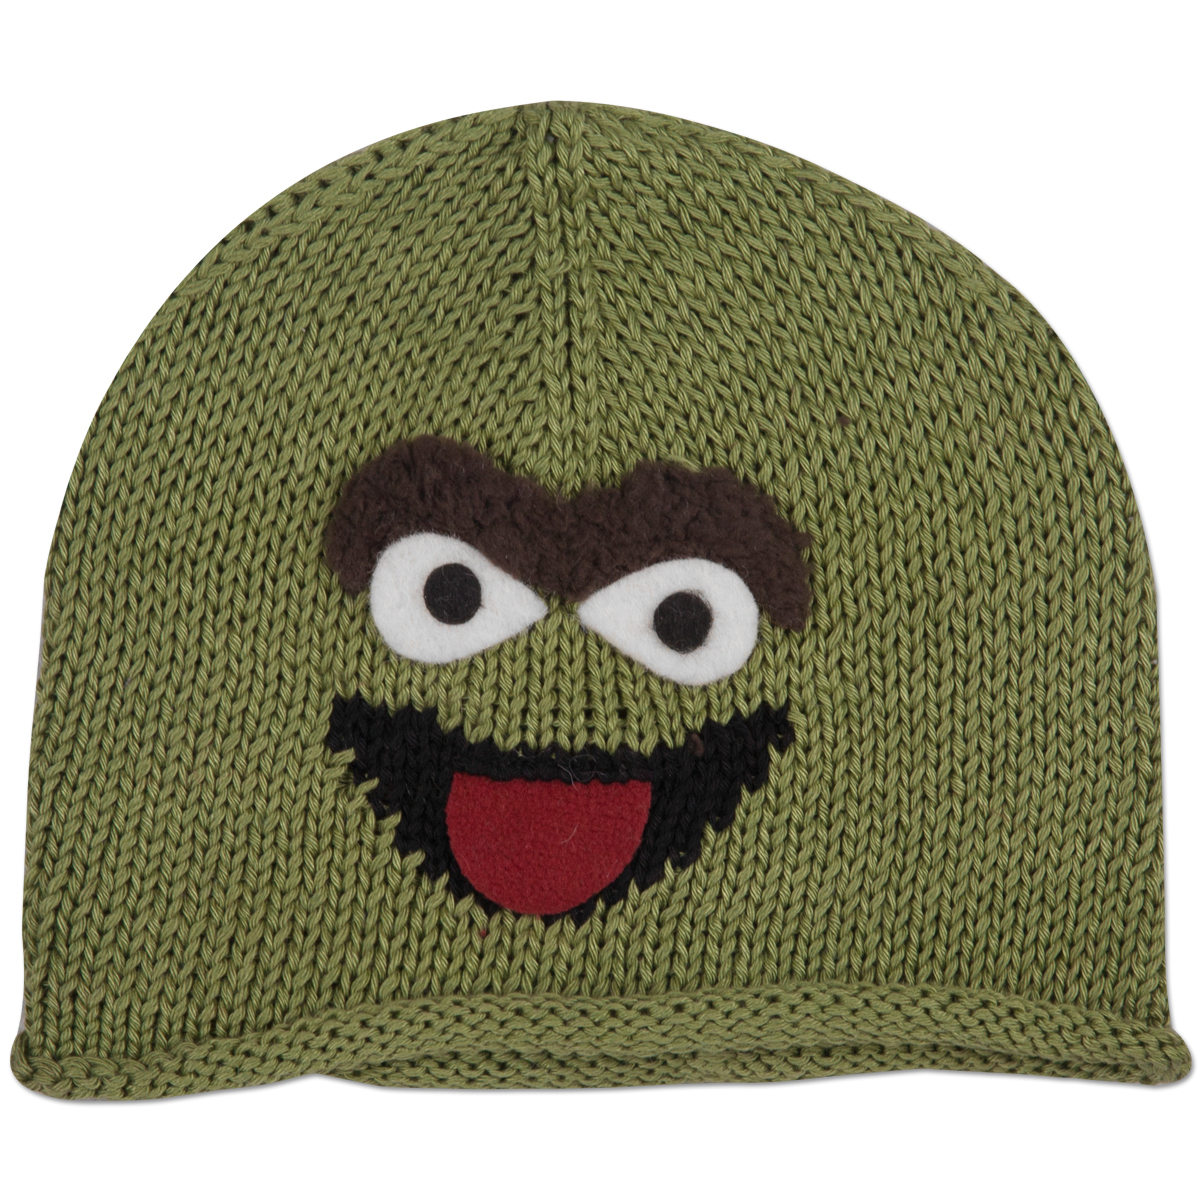 Oscar the Grouch Cotton Kids Beanie